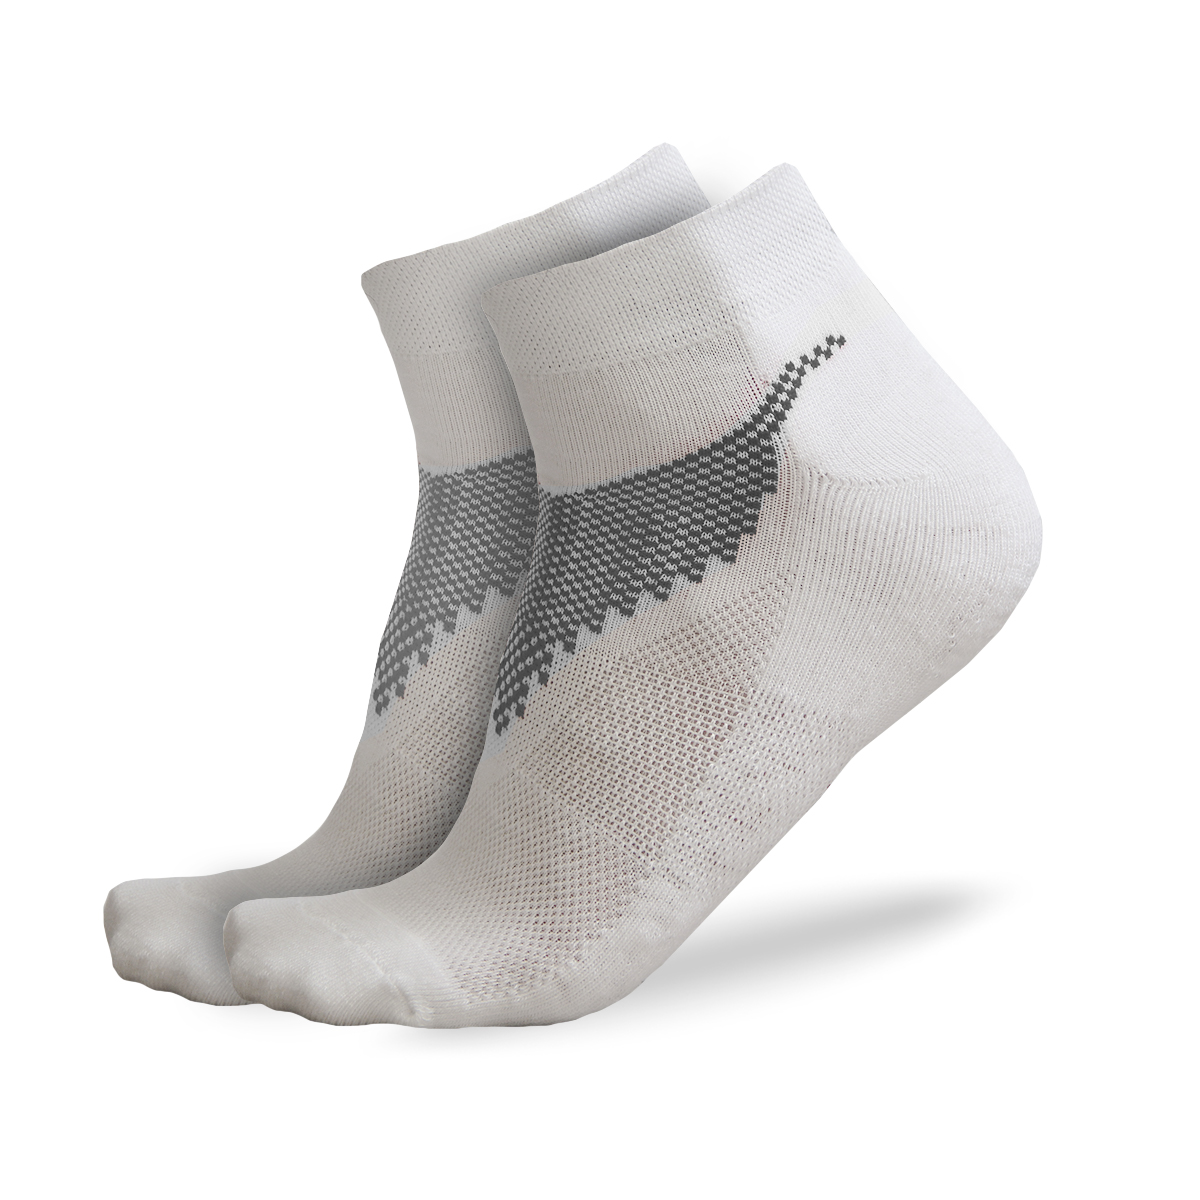 FREEZ ANCLE SOCKS 2-pack white 43-46